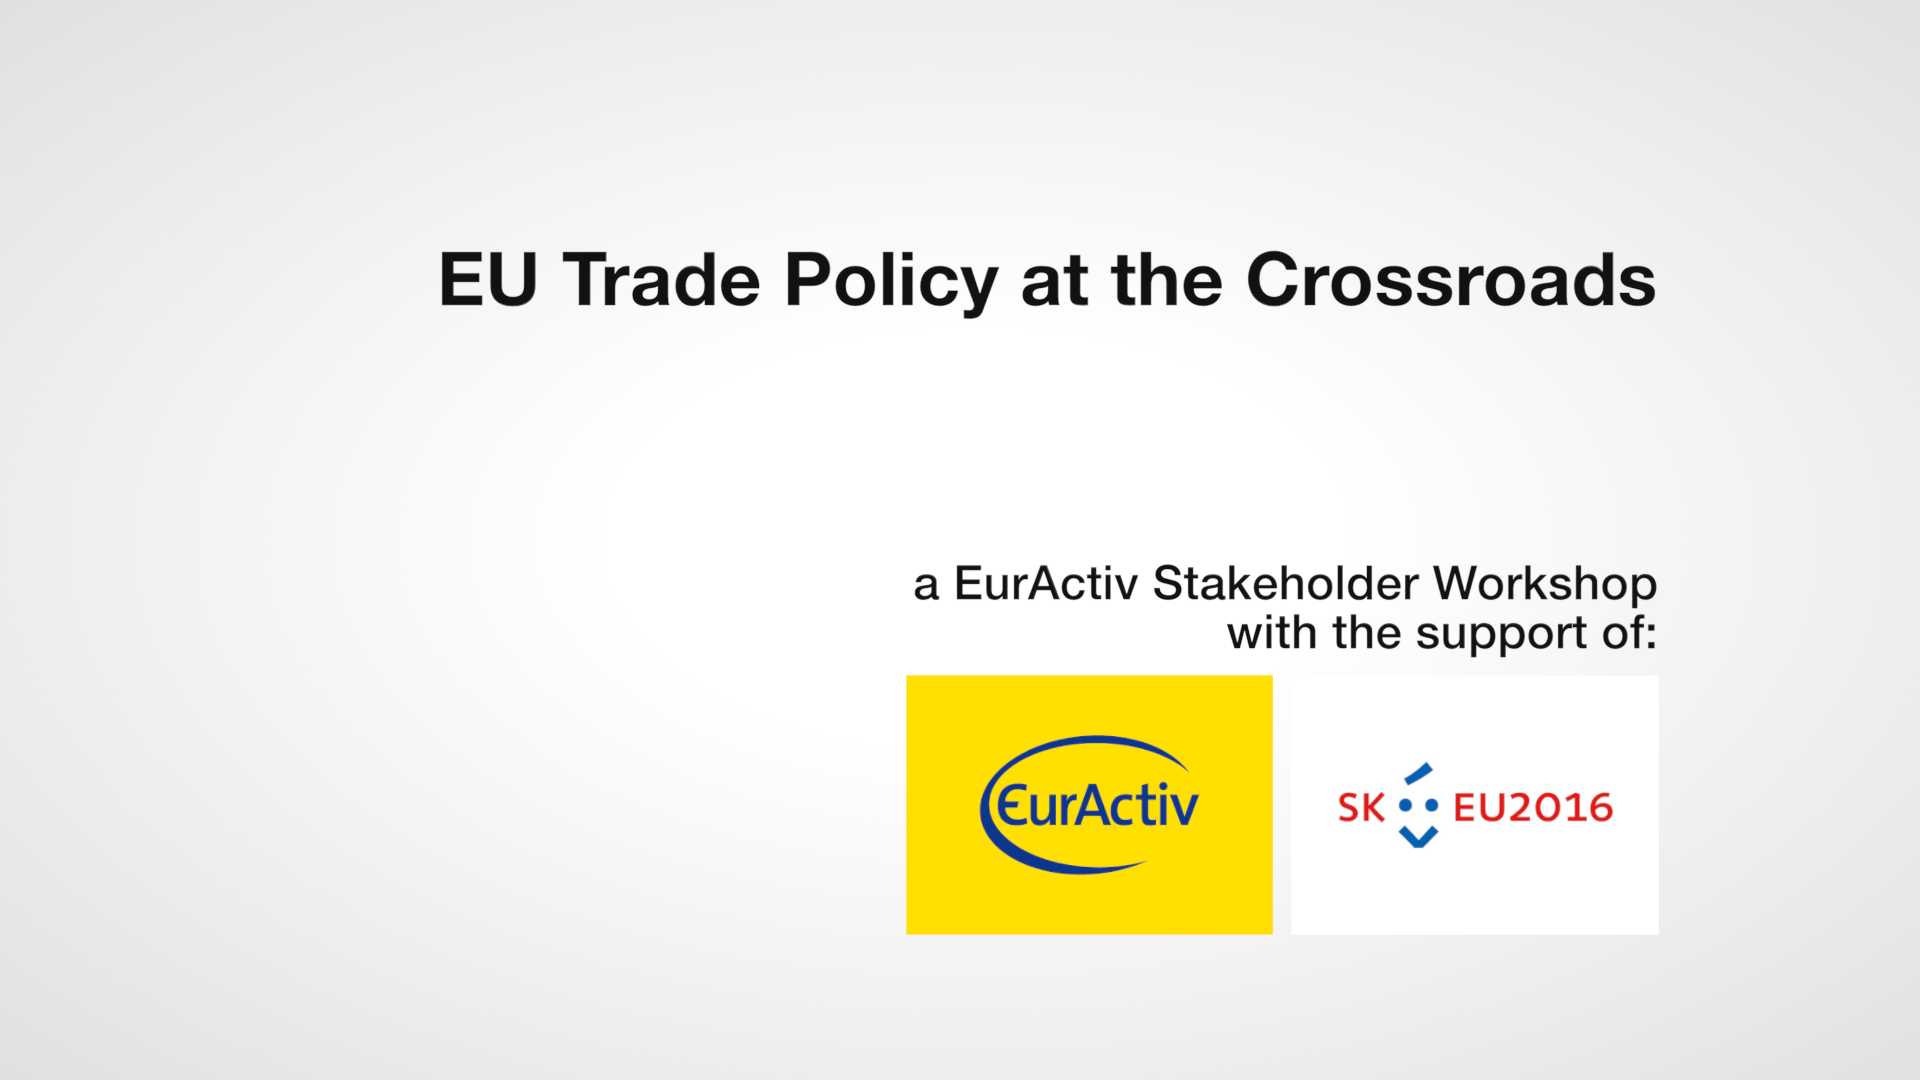 EU trade policy at the crossroads